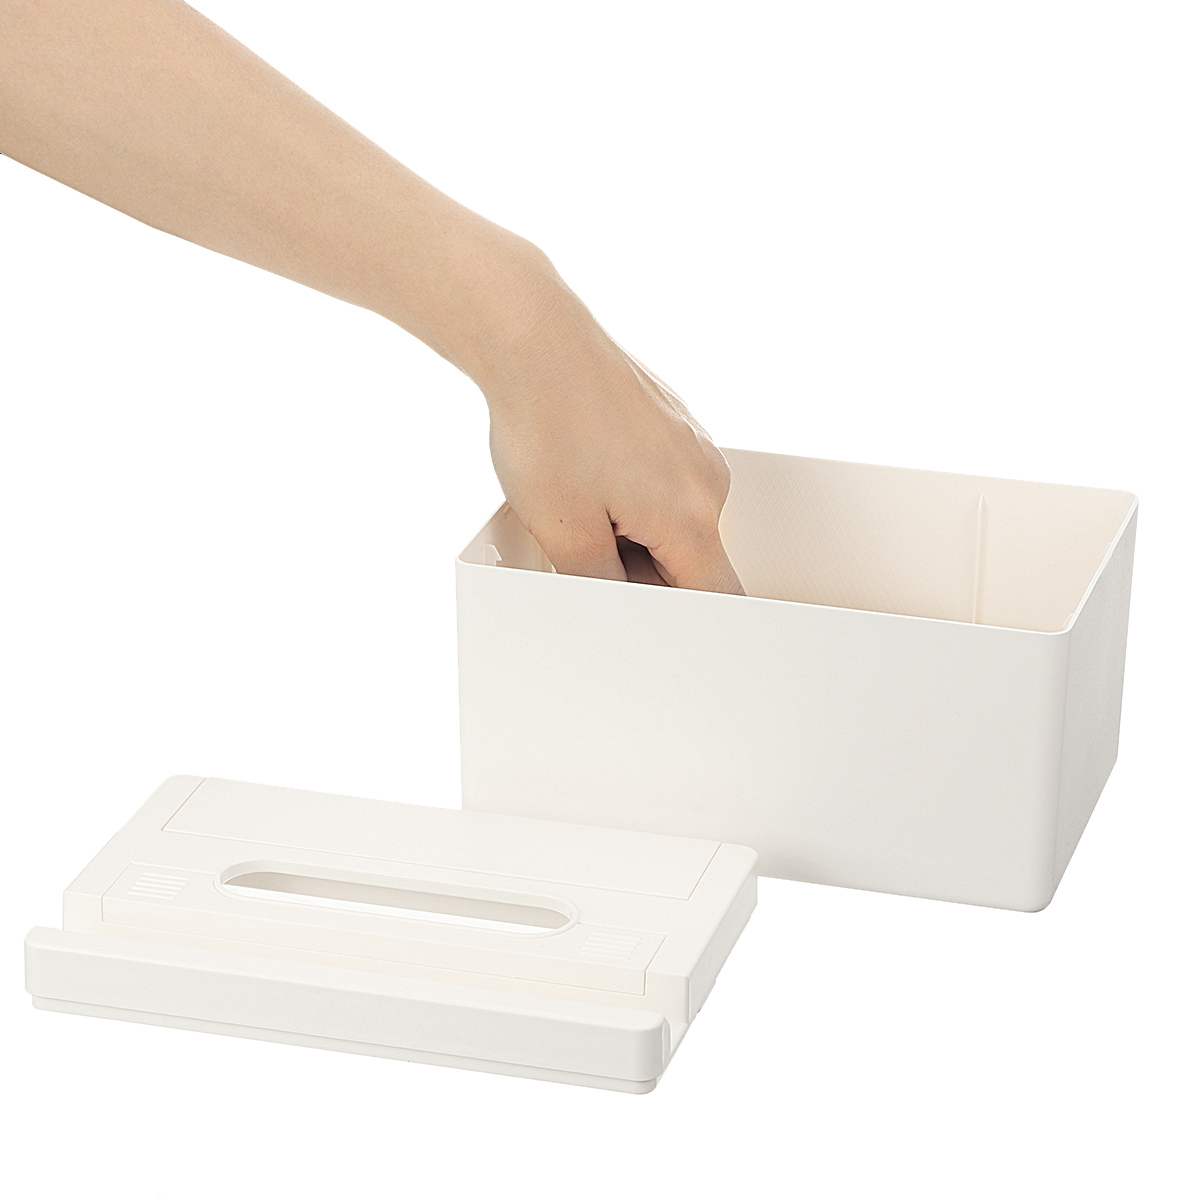 Multifunctional Automatic Lift Tissue Box Case ABS Home Storage Box Paper Towel Organizer Automatic Lifting Storage Holder Table Decoration Container